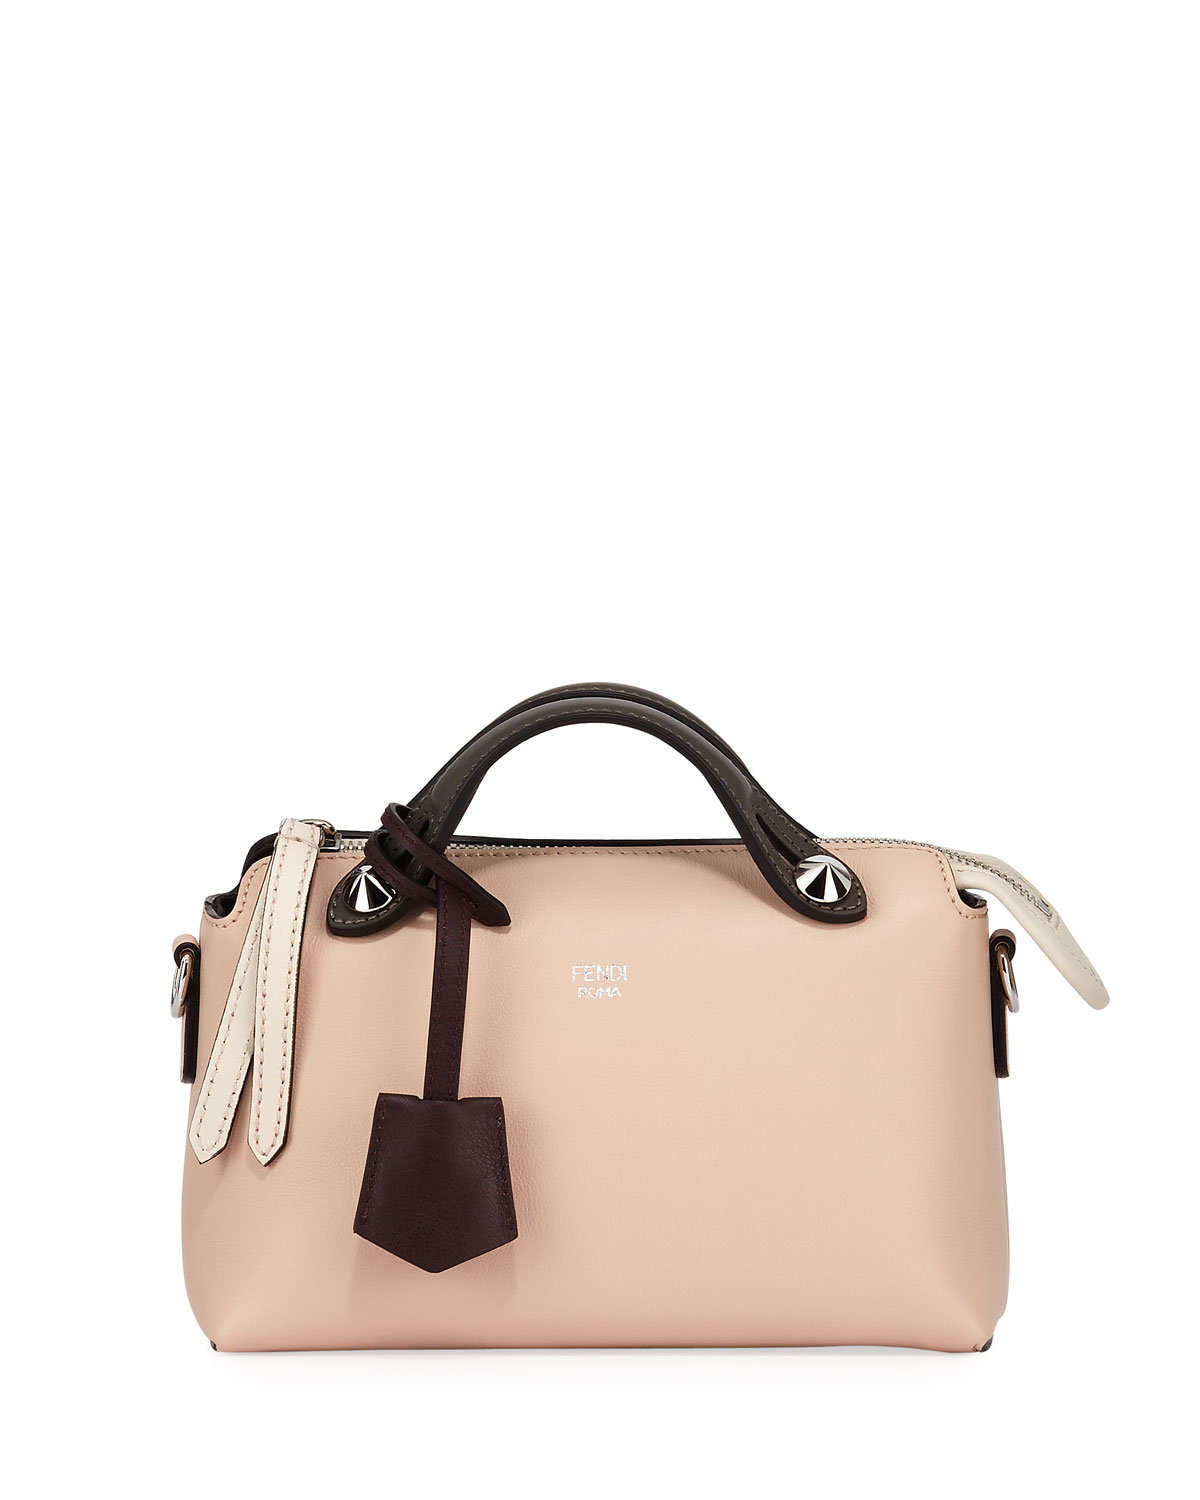 3b3da2f724 Fendi By The Way Mini Calf Dolce Satchel Bag | Neiman Marcus